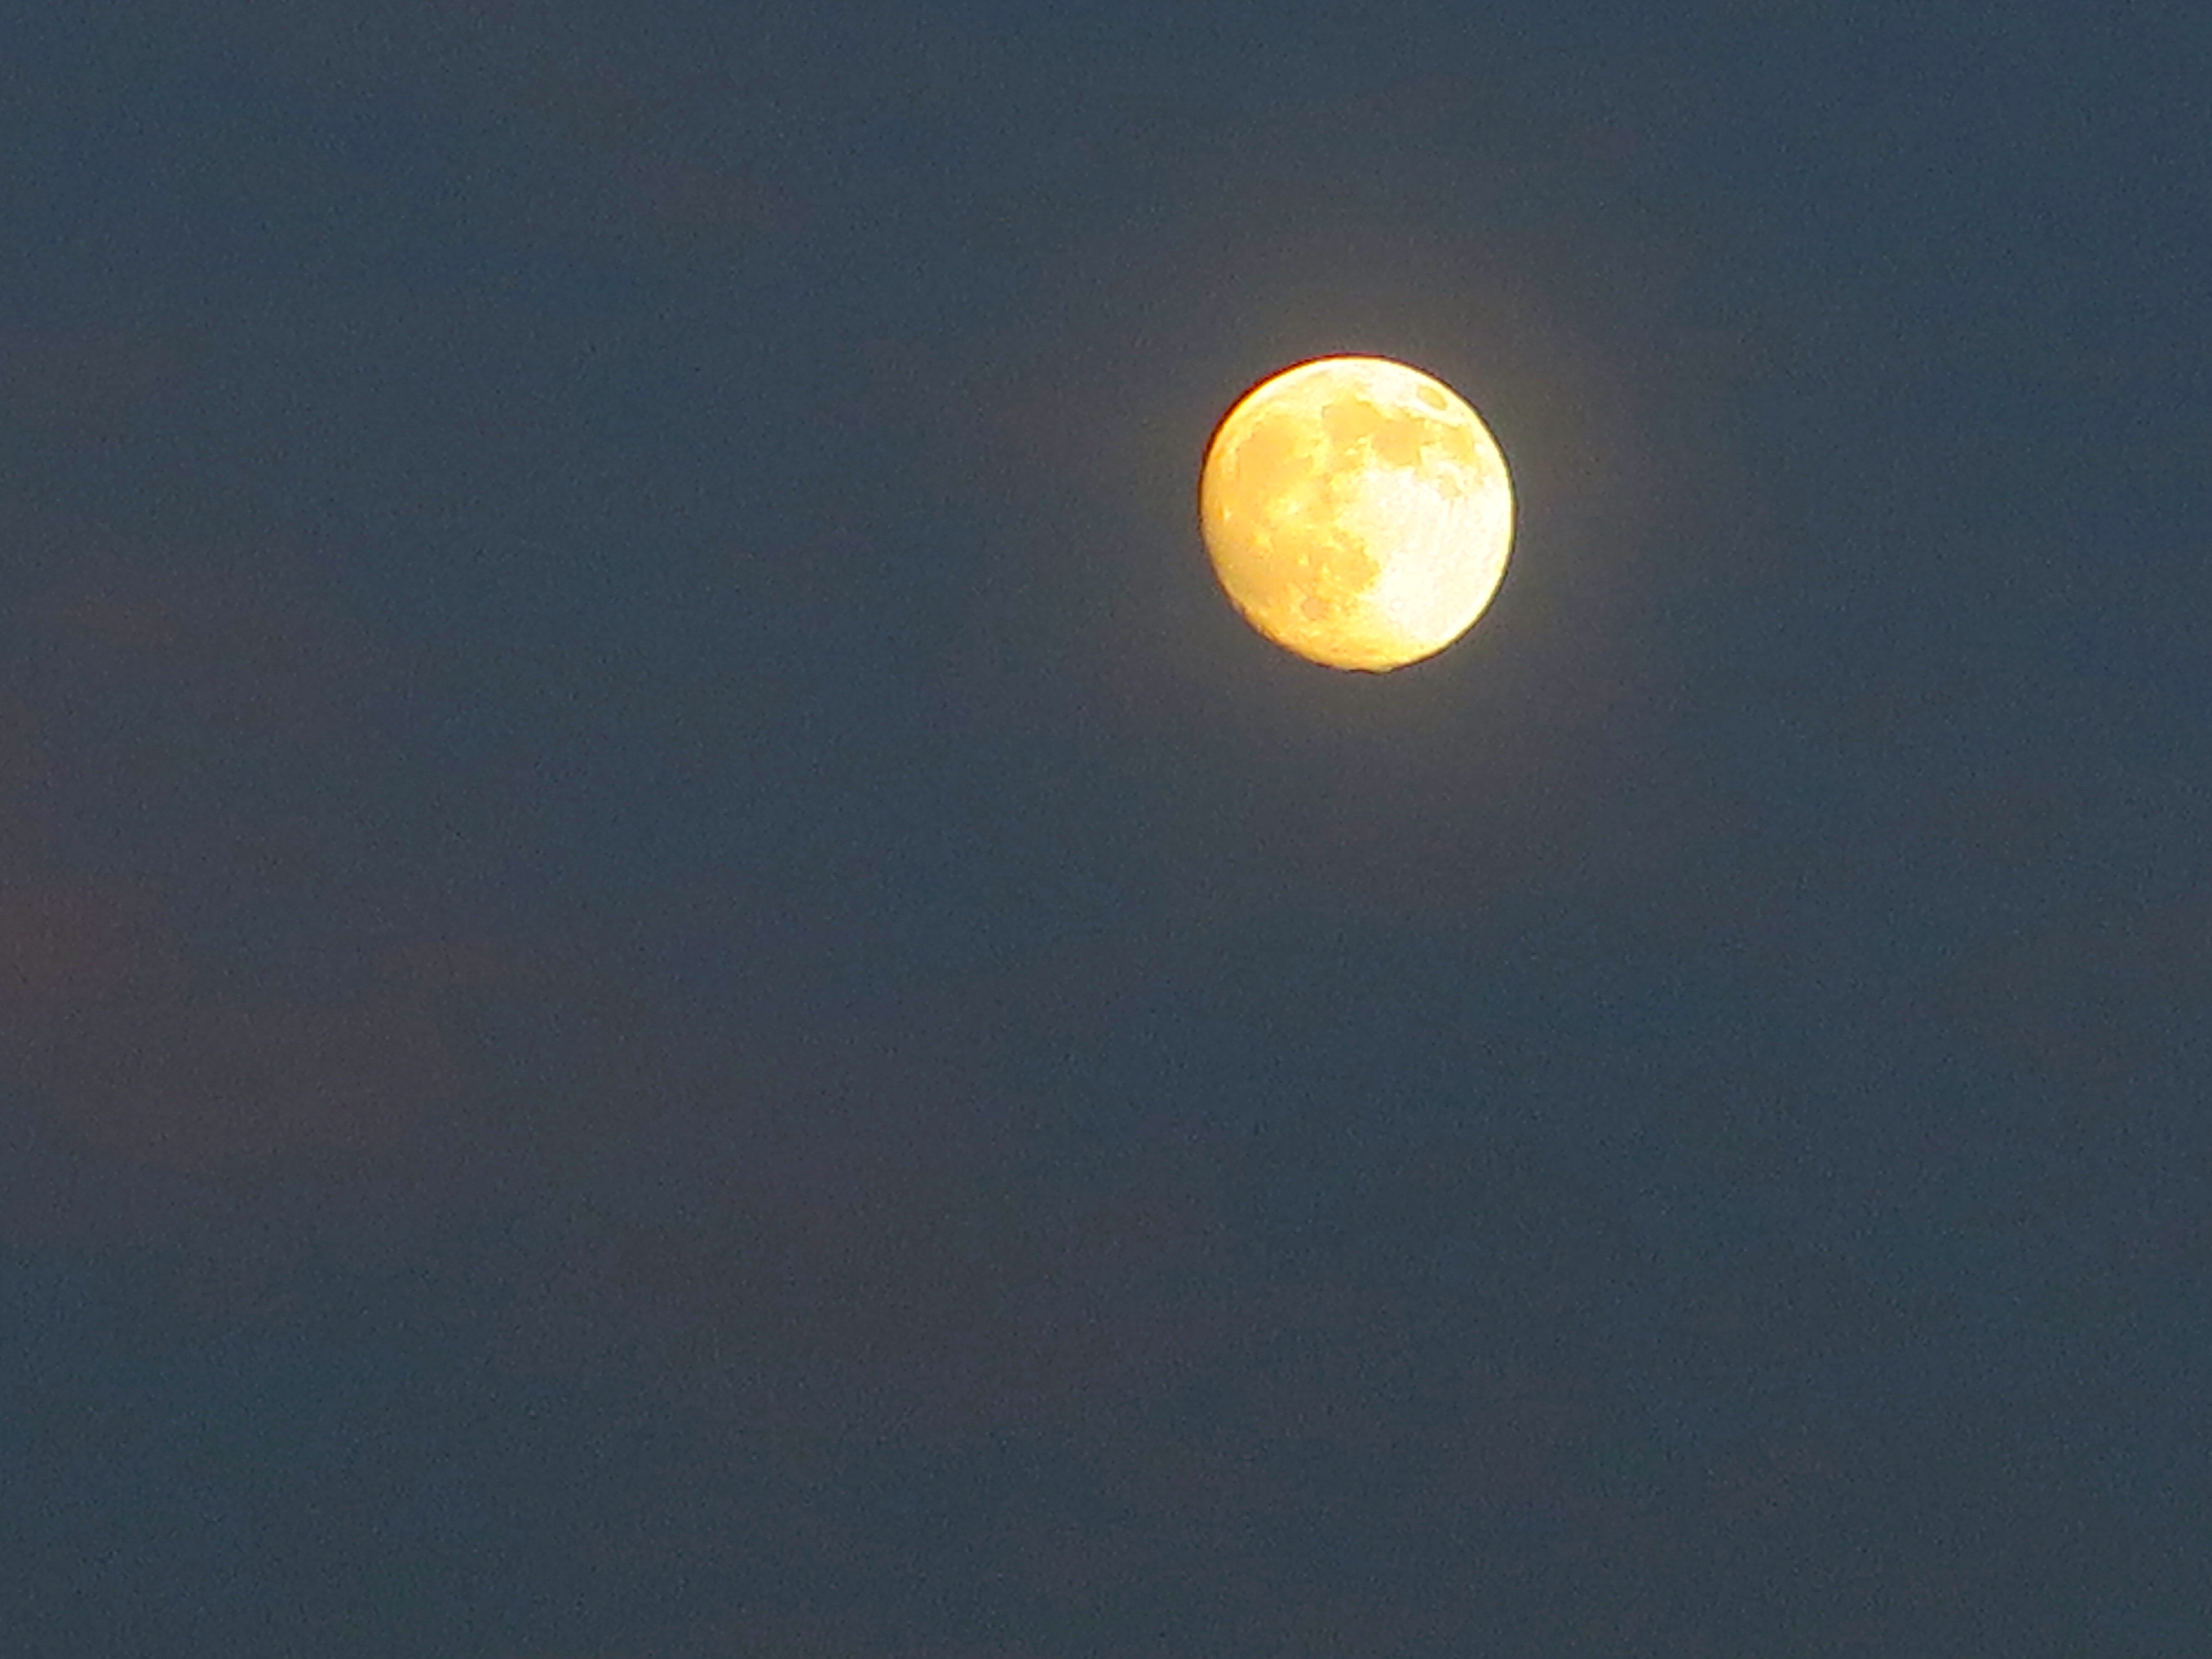 This full moon wasn't last night, but it felt like it should have been.